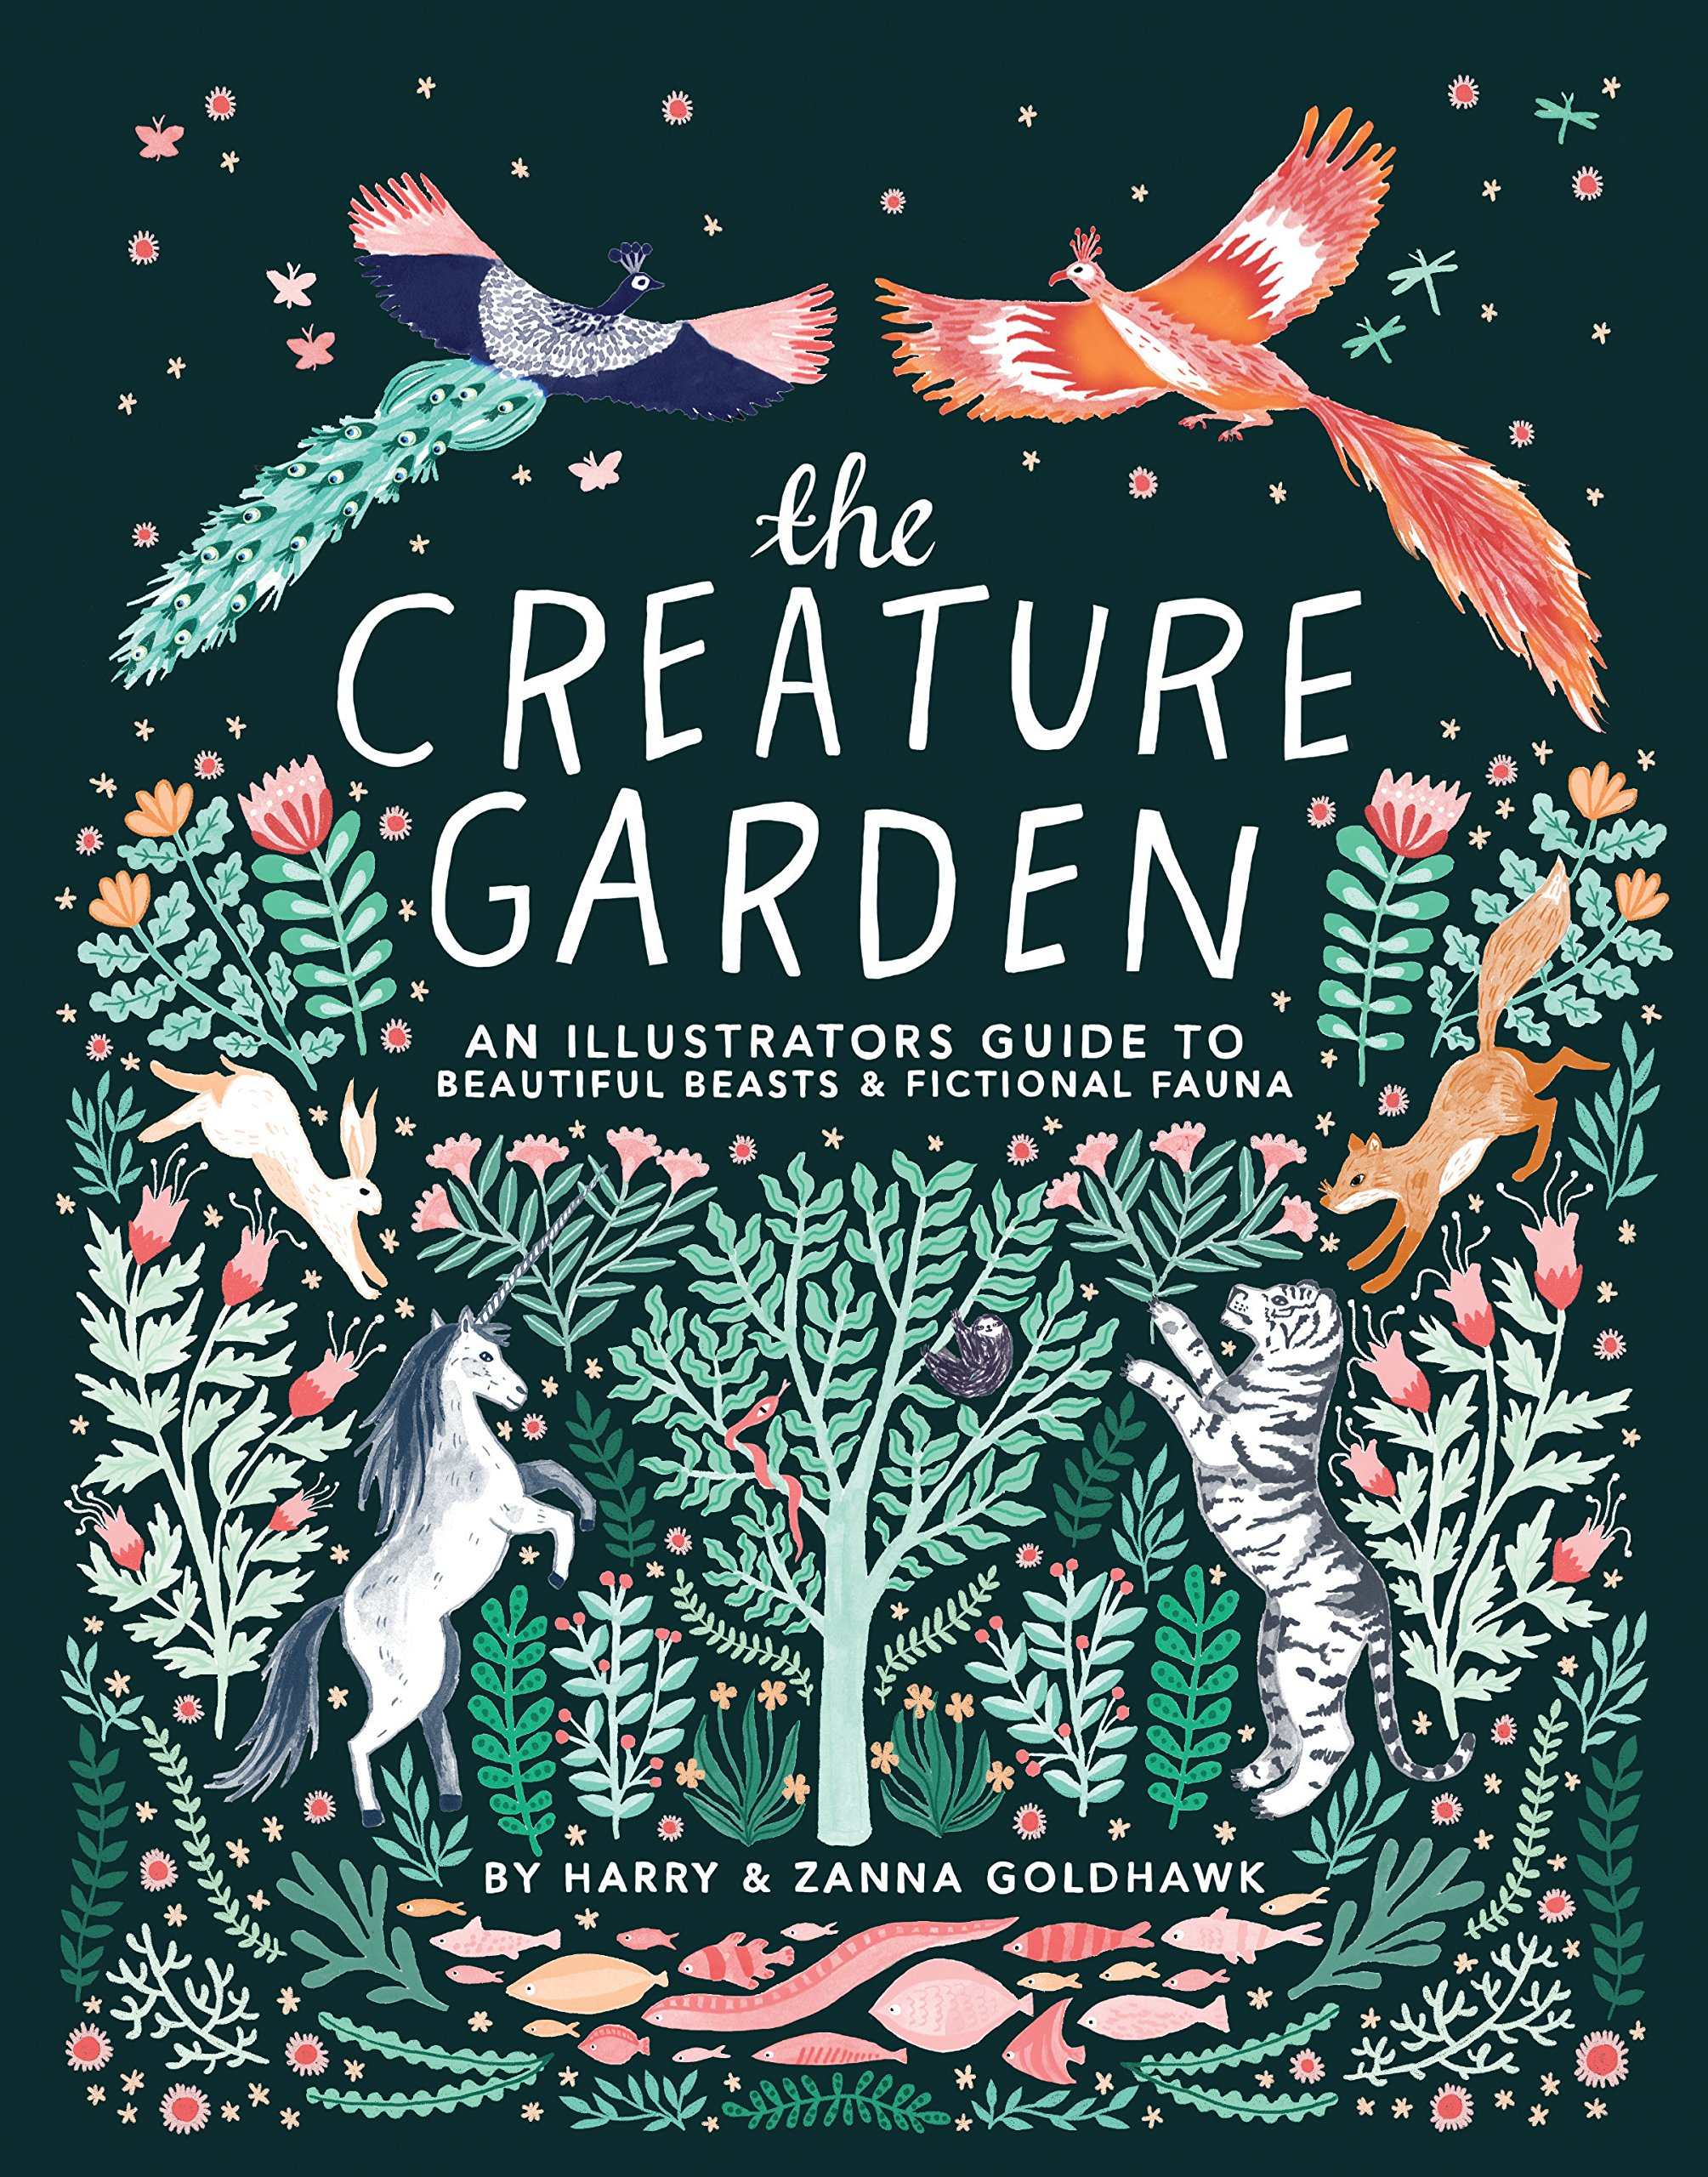 The Creature Garden  An Illustrator's Guide To Beautiful Beasts And Fictional Fauna